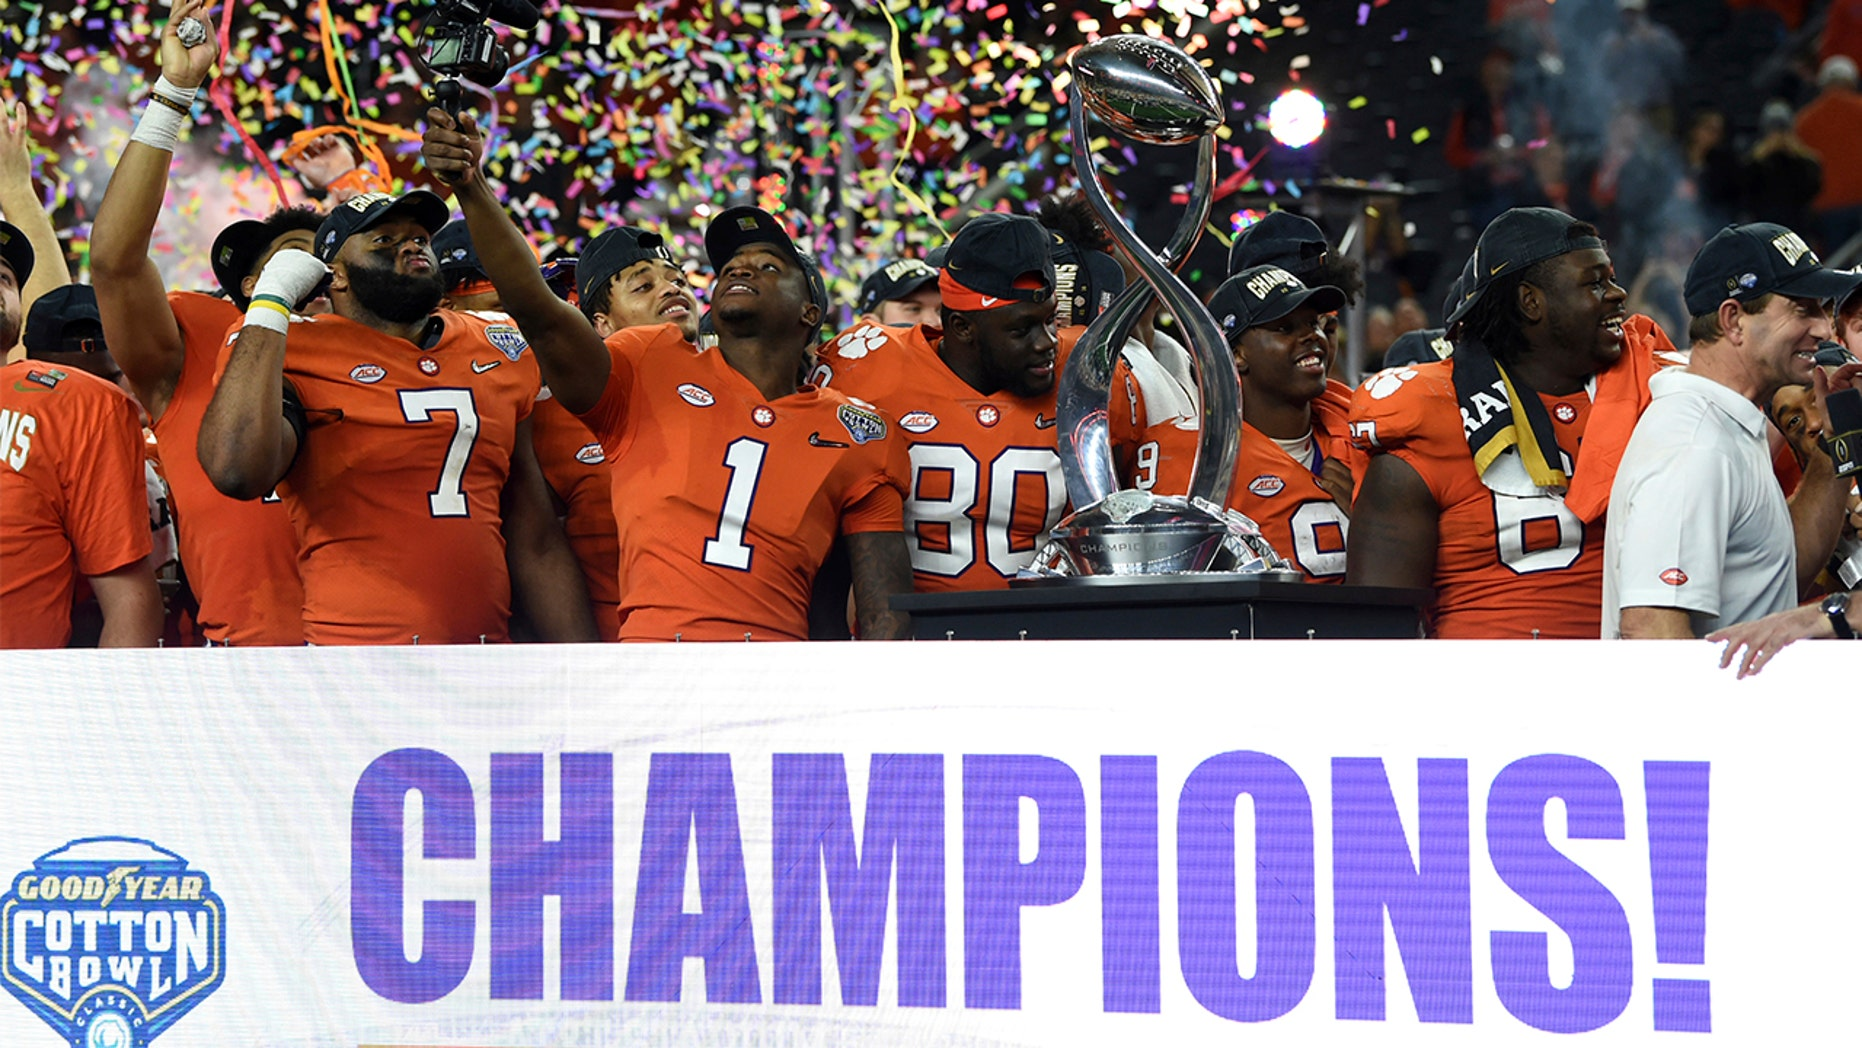 Clemson defeats Notre Dame, 30-3, in NCAA Cotton Bowl ...